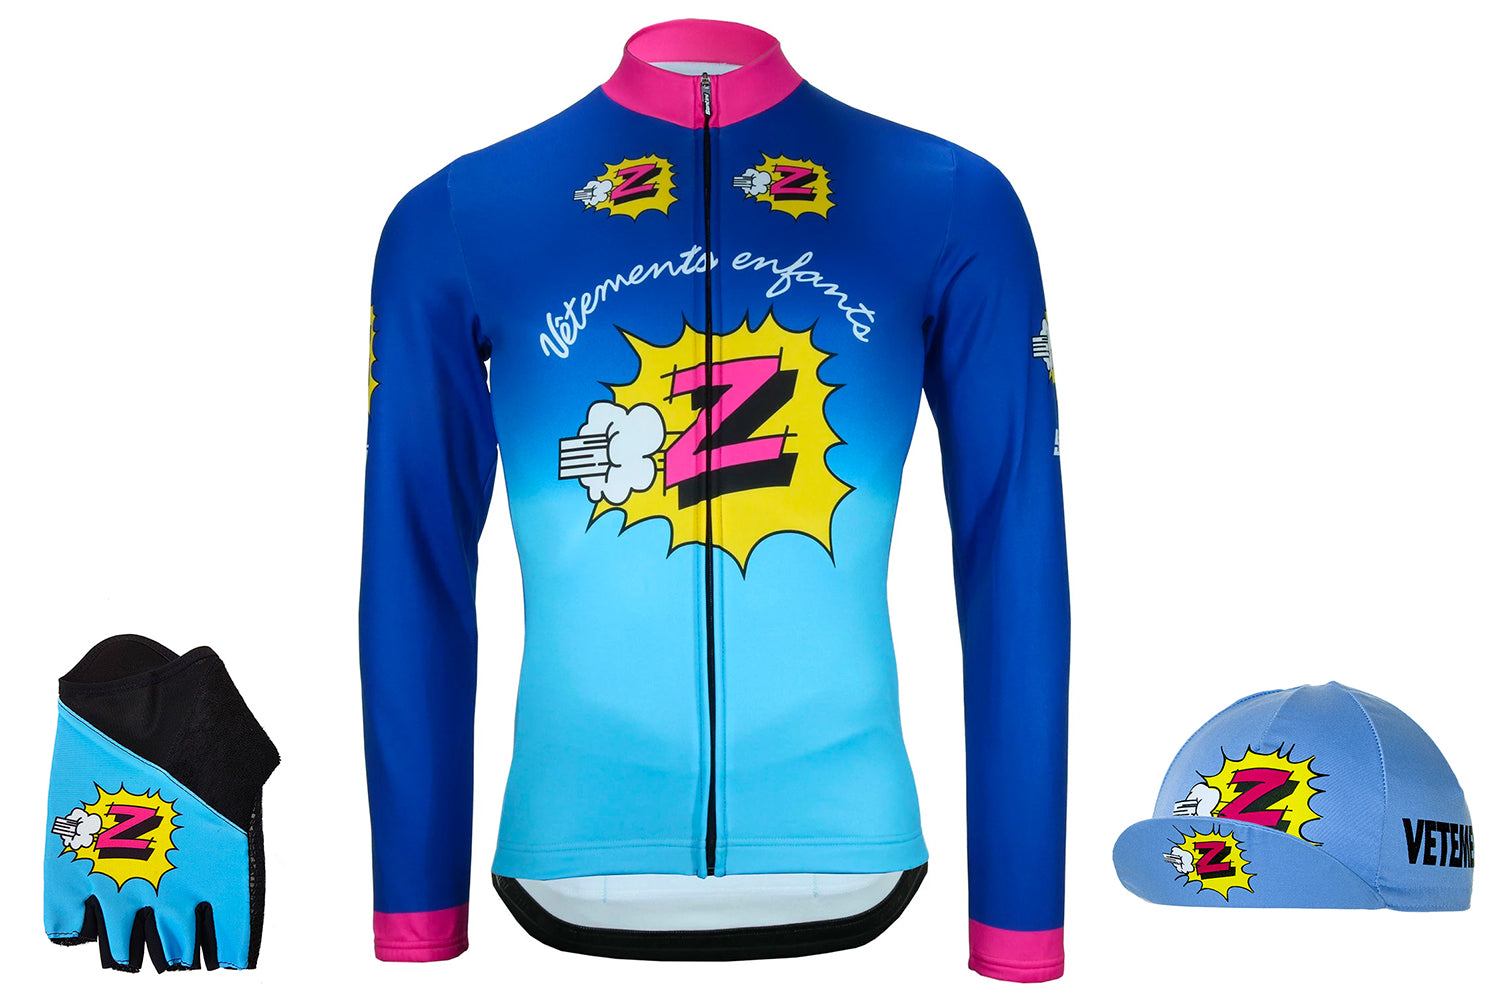 Z Retro team cycle clothing by Santini available at Prendas Ciclismo